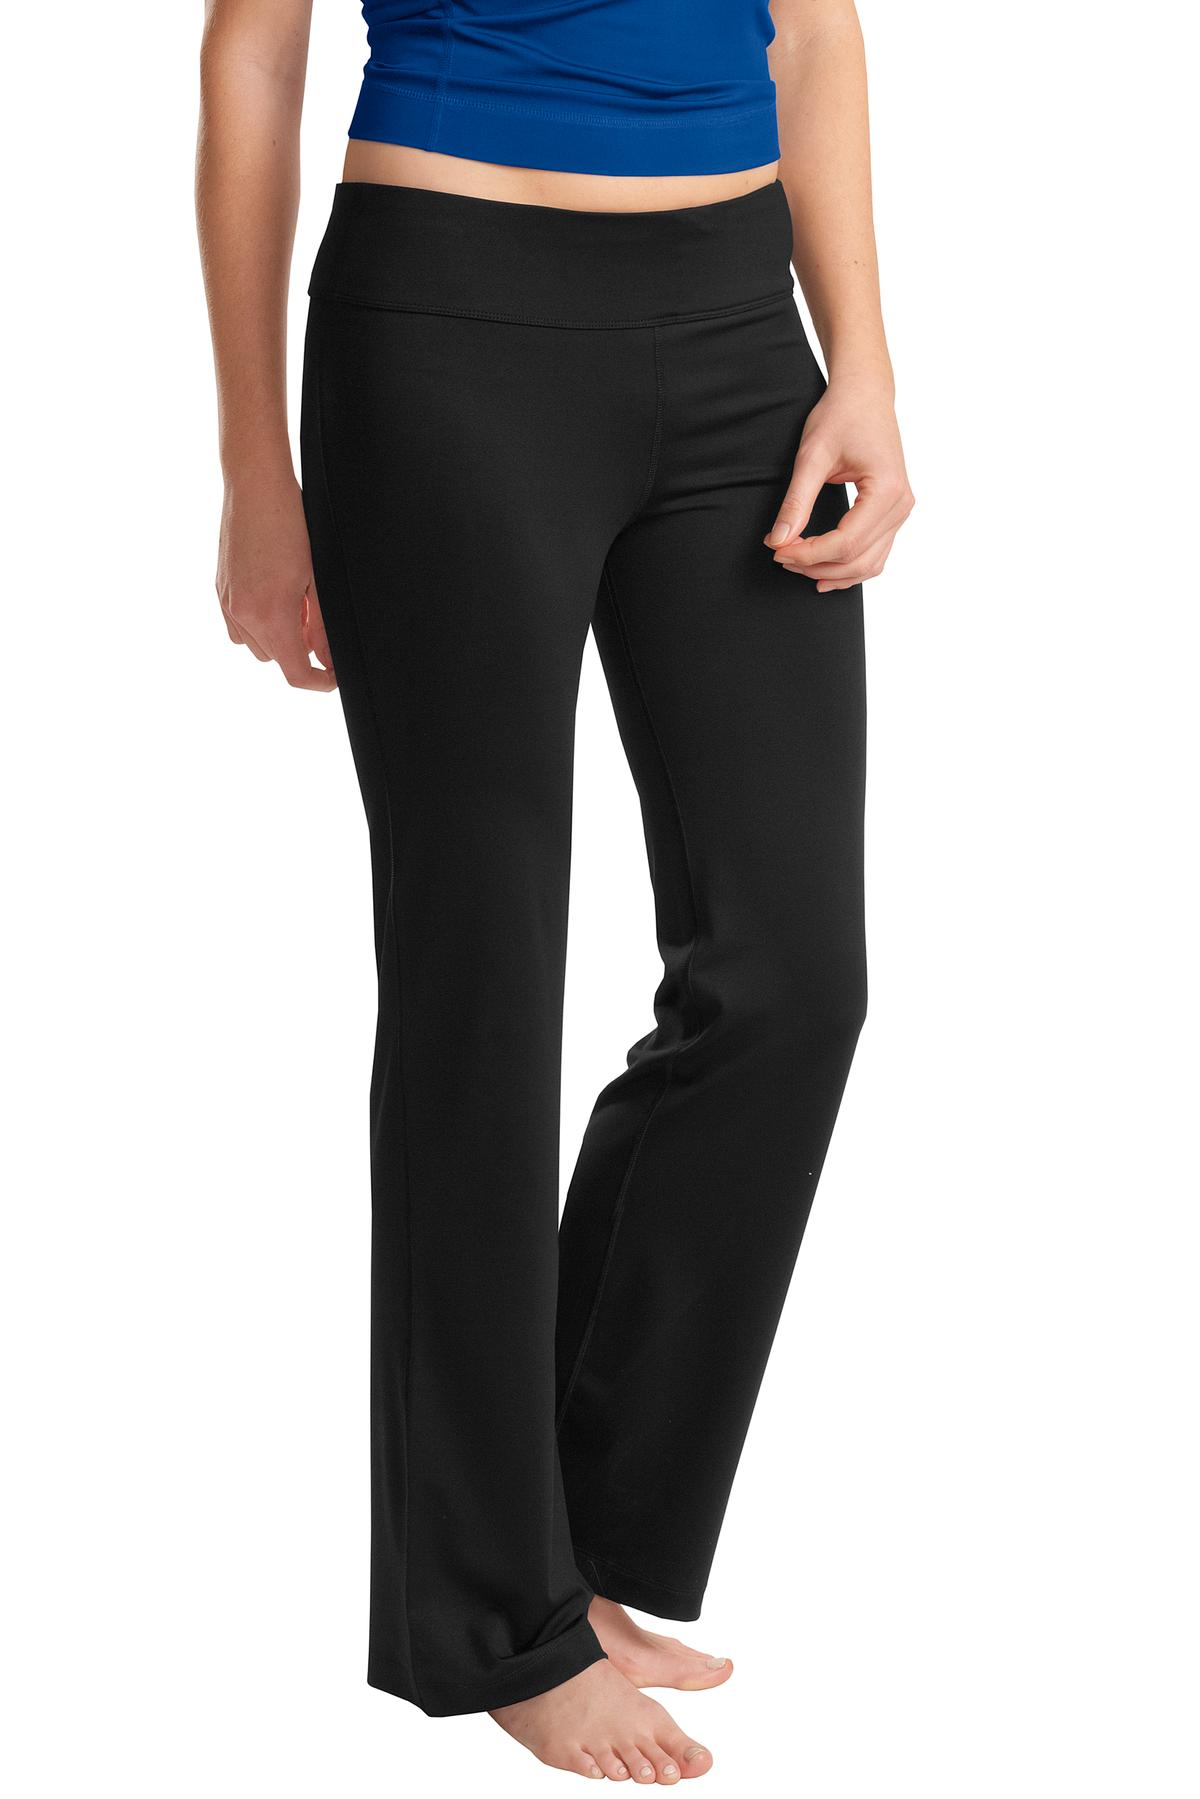 Sport-Tek ®  Ladies NRG Fitness Pant. LPST880 - Black